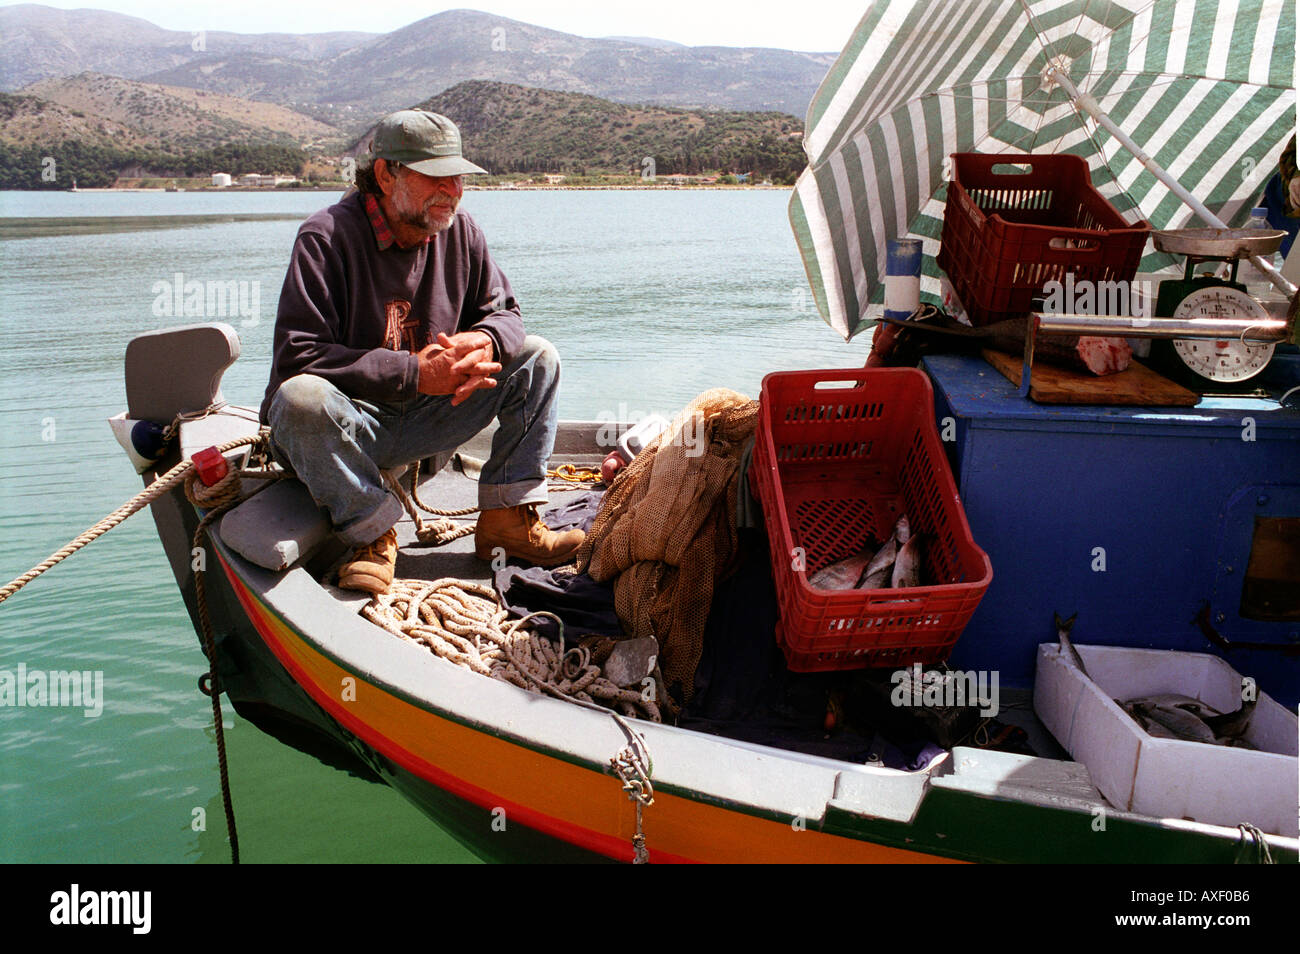 Fisherman going through cleaning out the days catch in harbour of Arastoli on Kefalonia Greek Island. - Stock Image